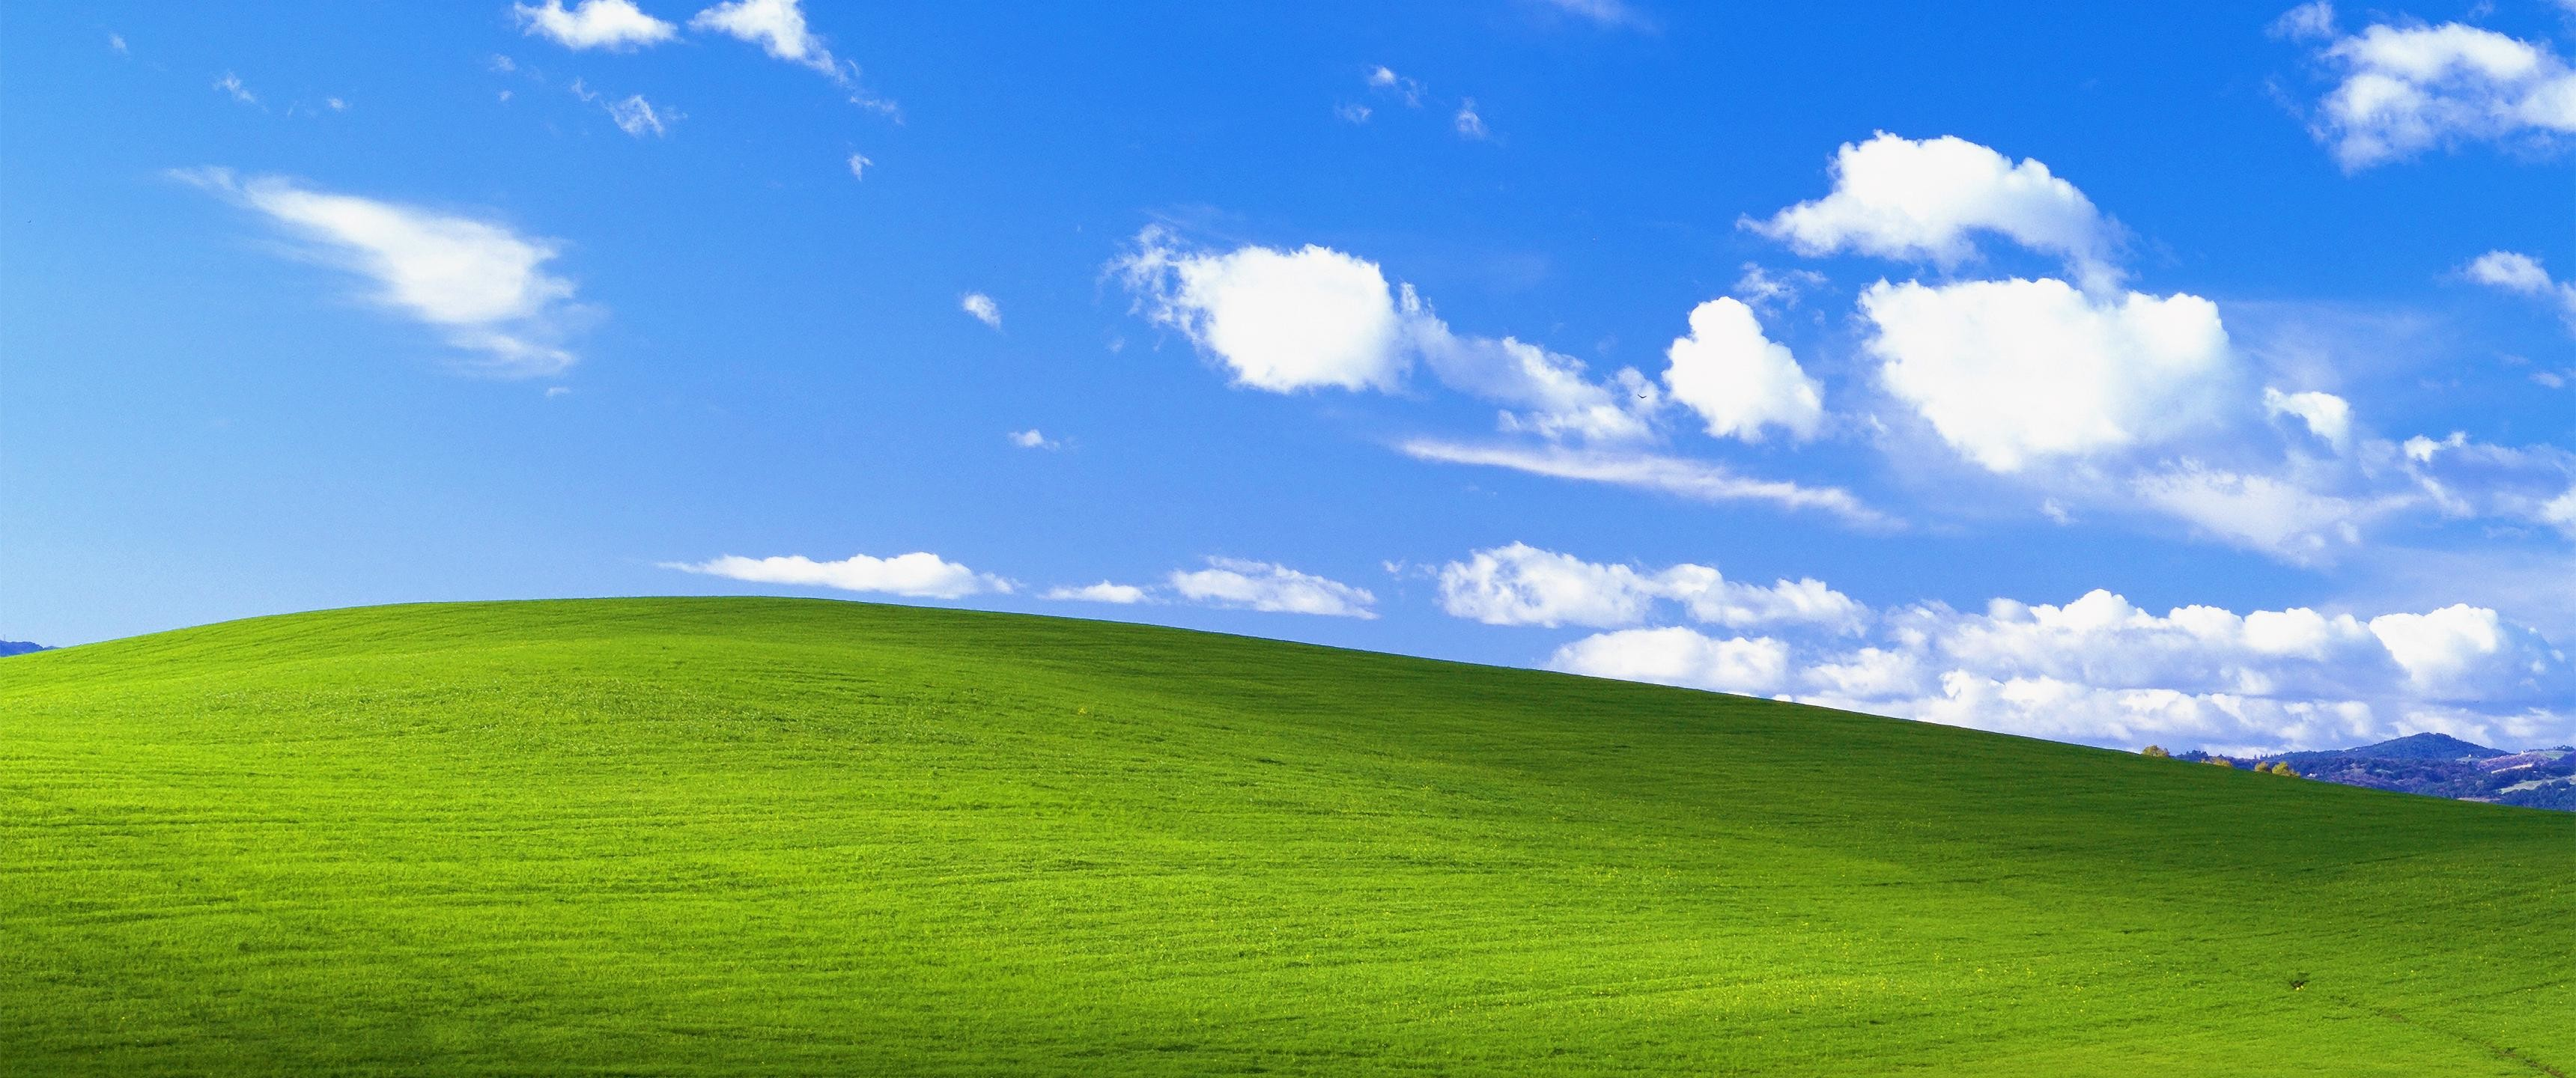 Windows Xp Home Edition Wallpaper 48 Images